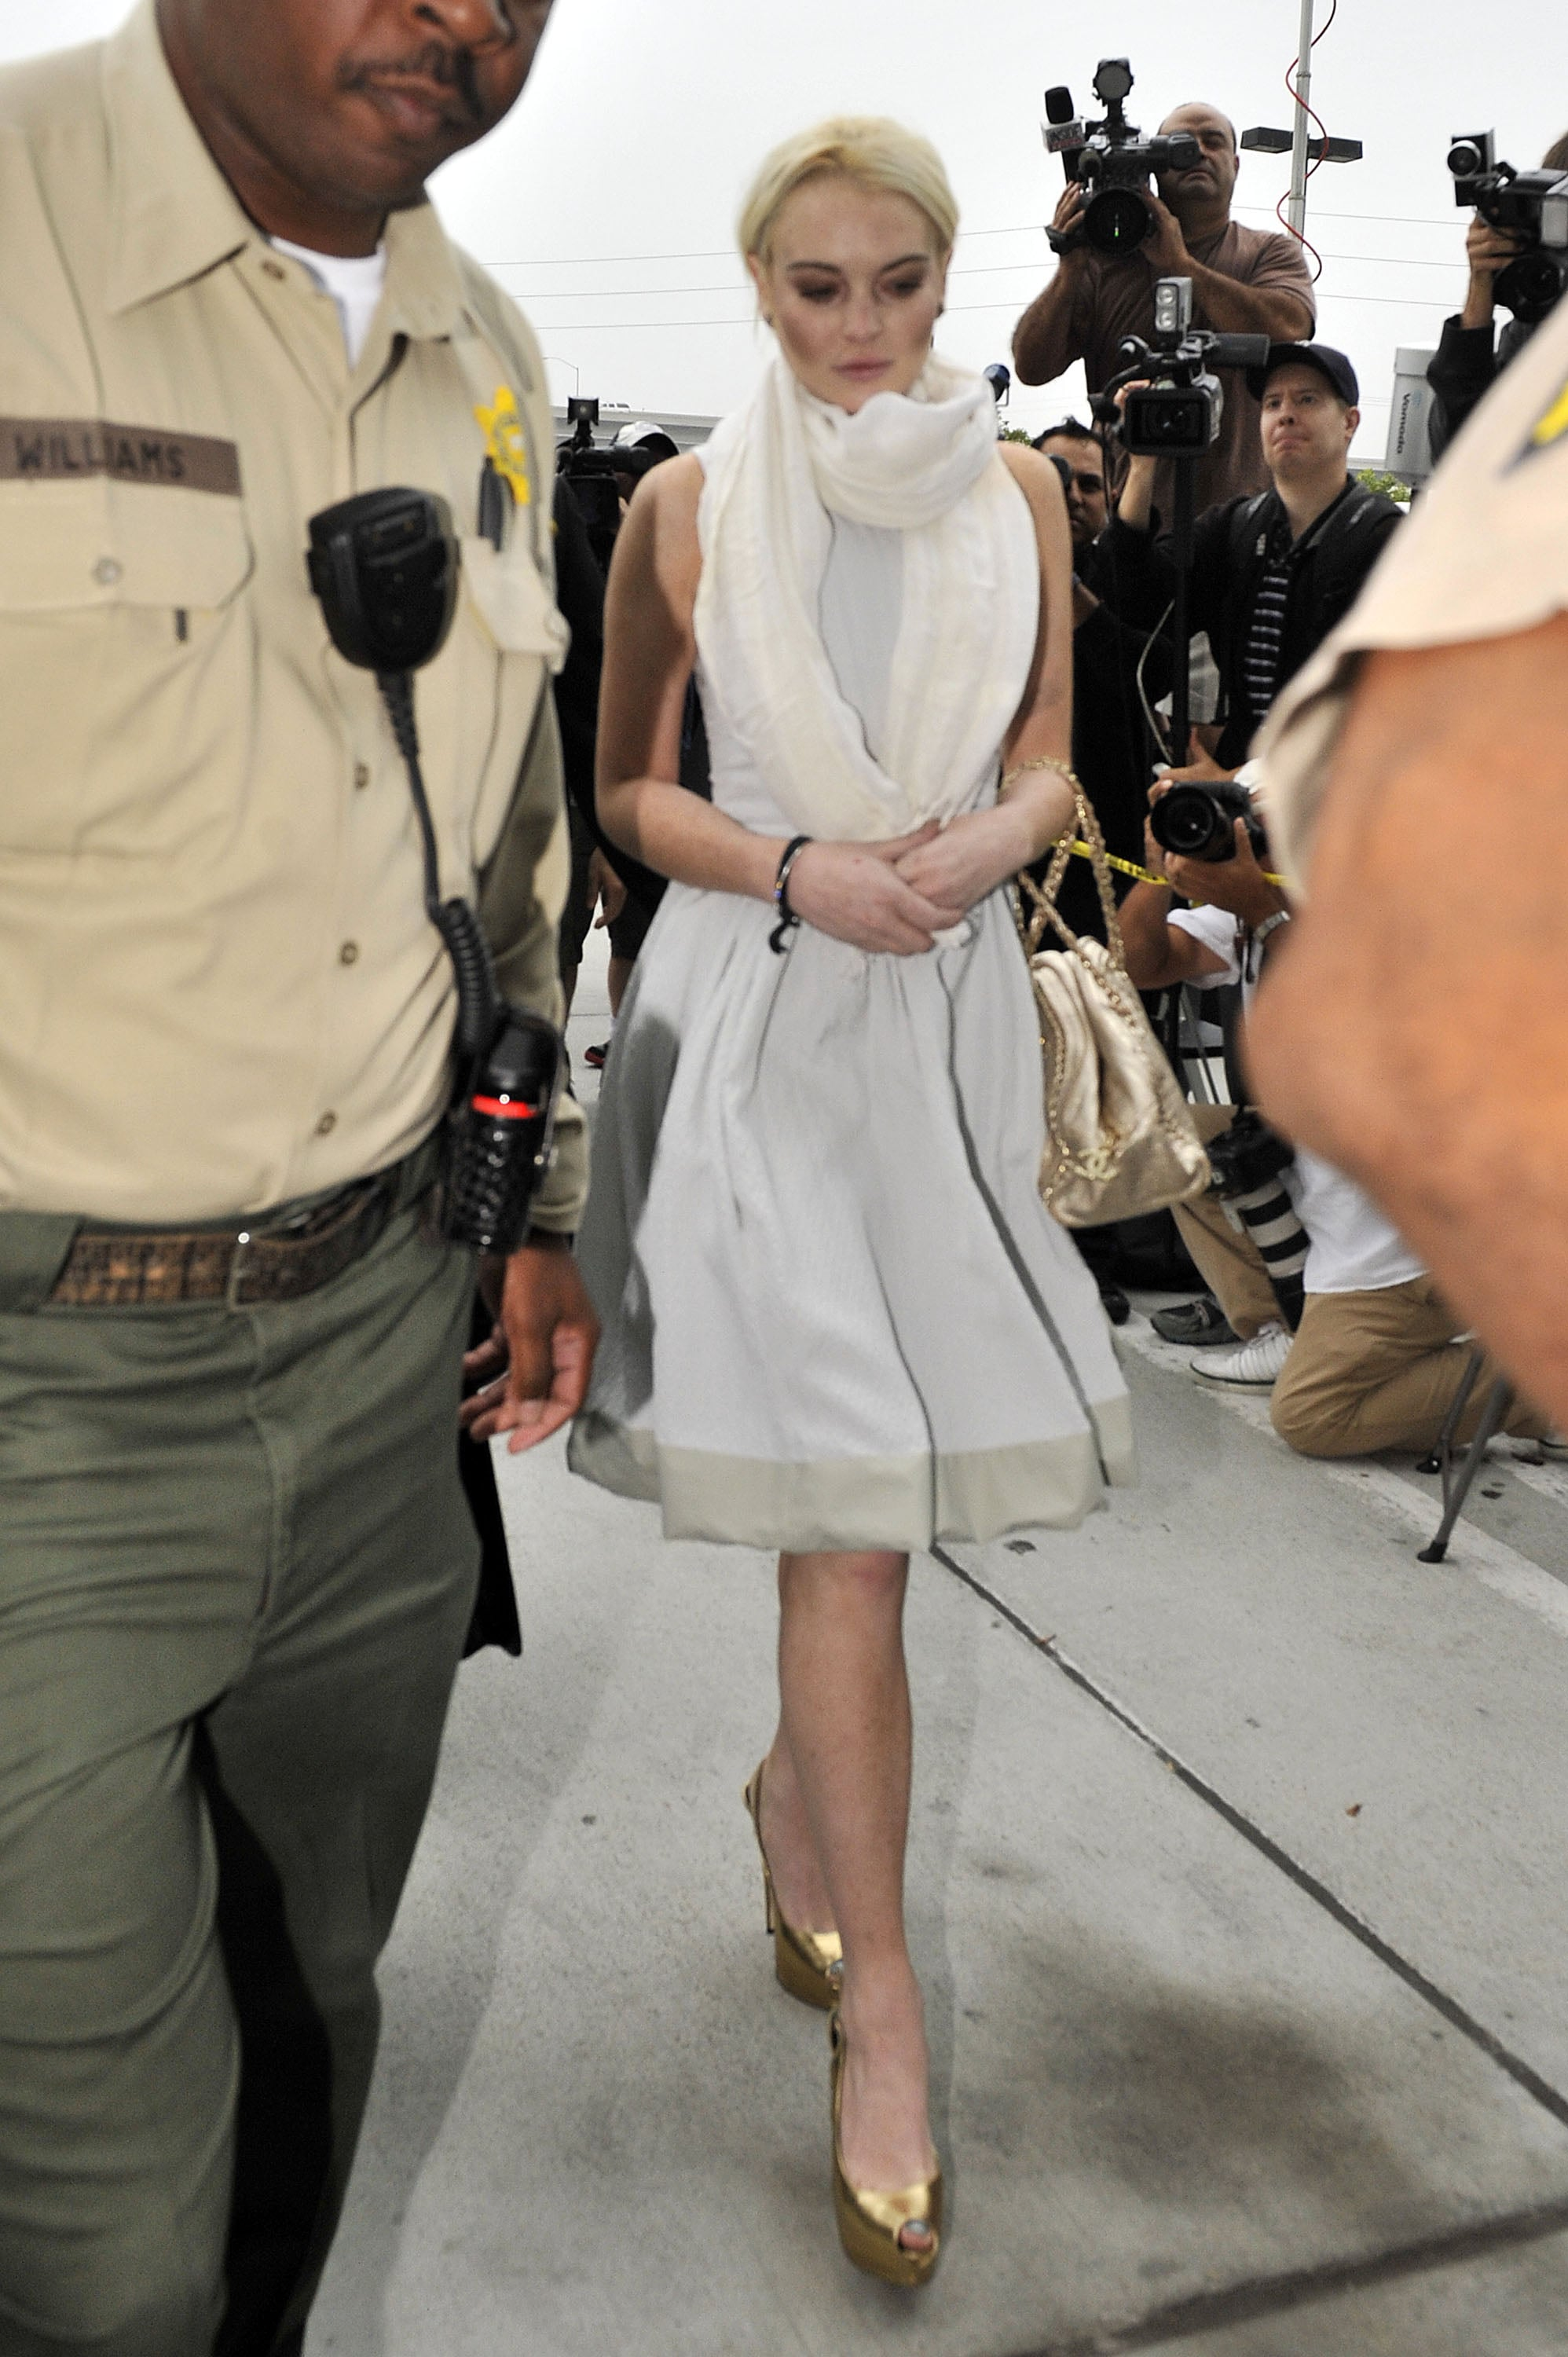 Lindsay Lohan was escorted to her hearing by police officers.